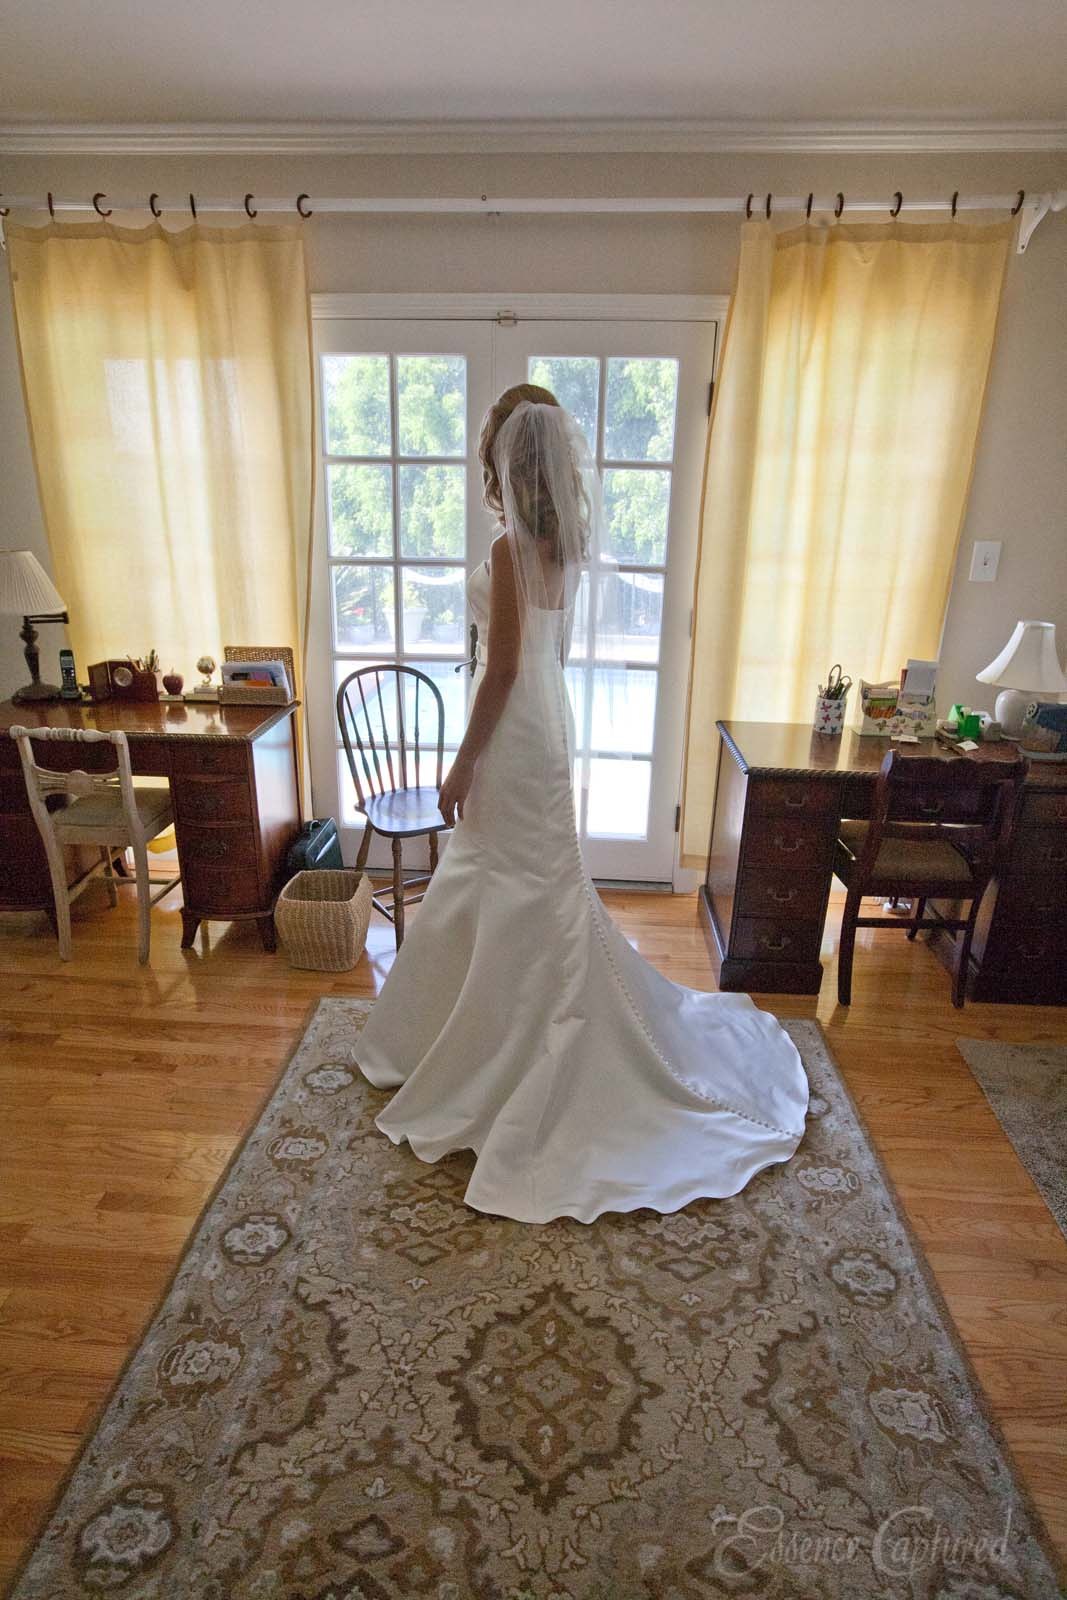 brides wedding dress in ready room looking out french doors